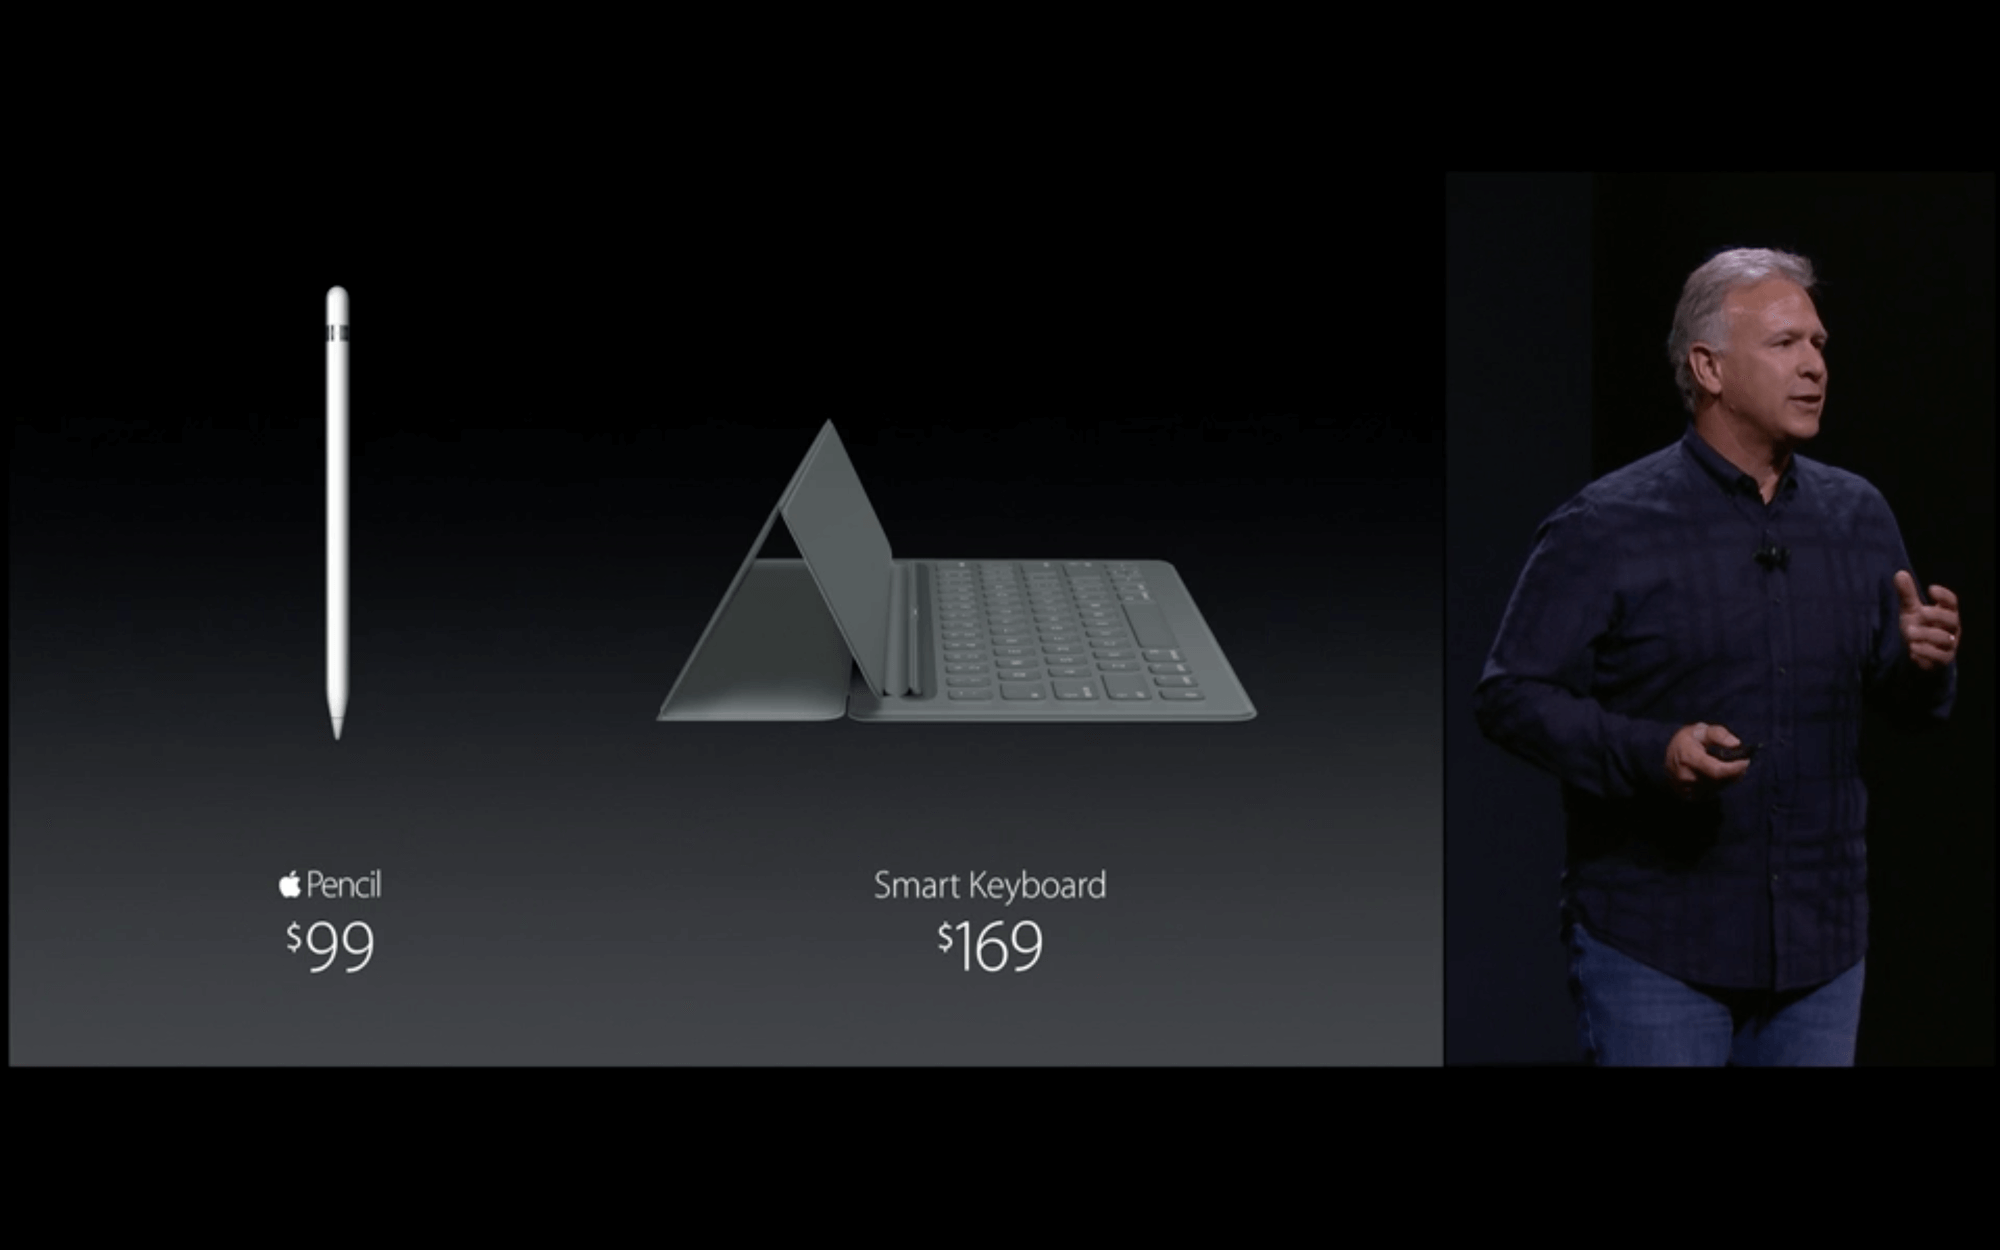 Apple Pencil and Smart Keyboard